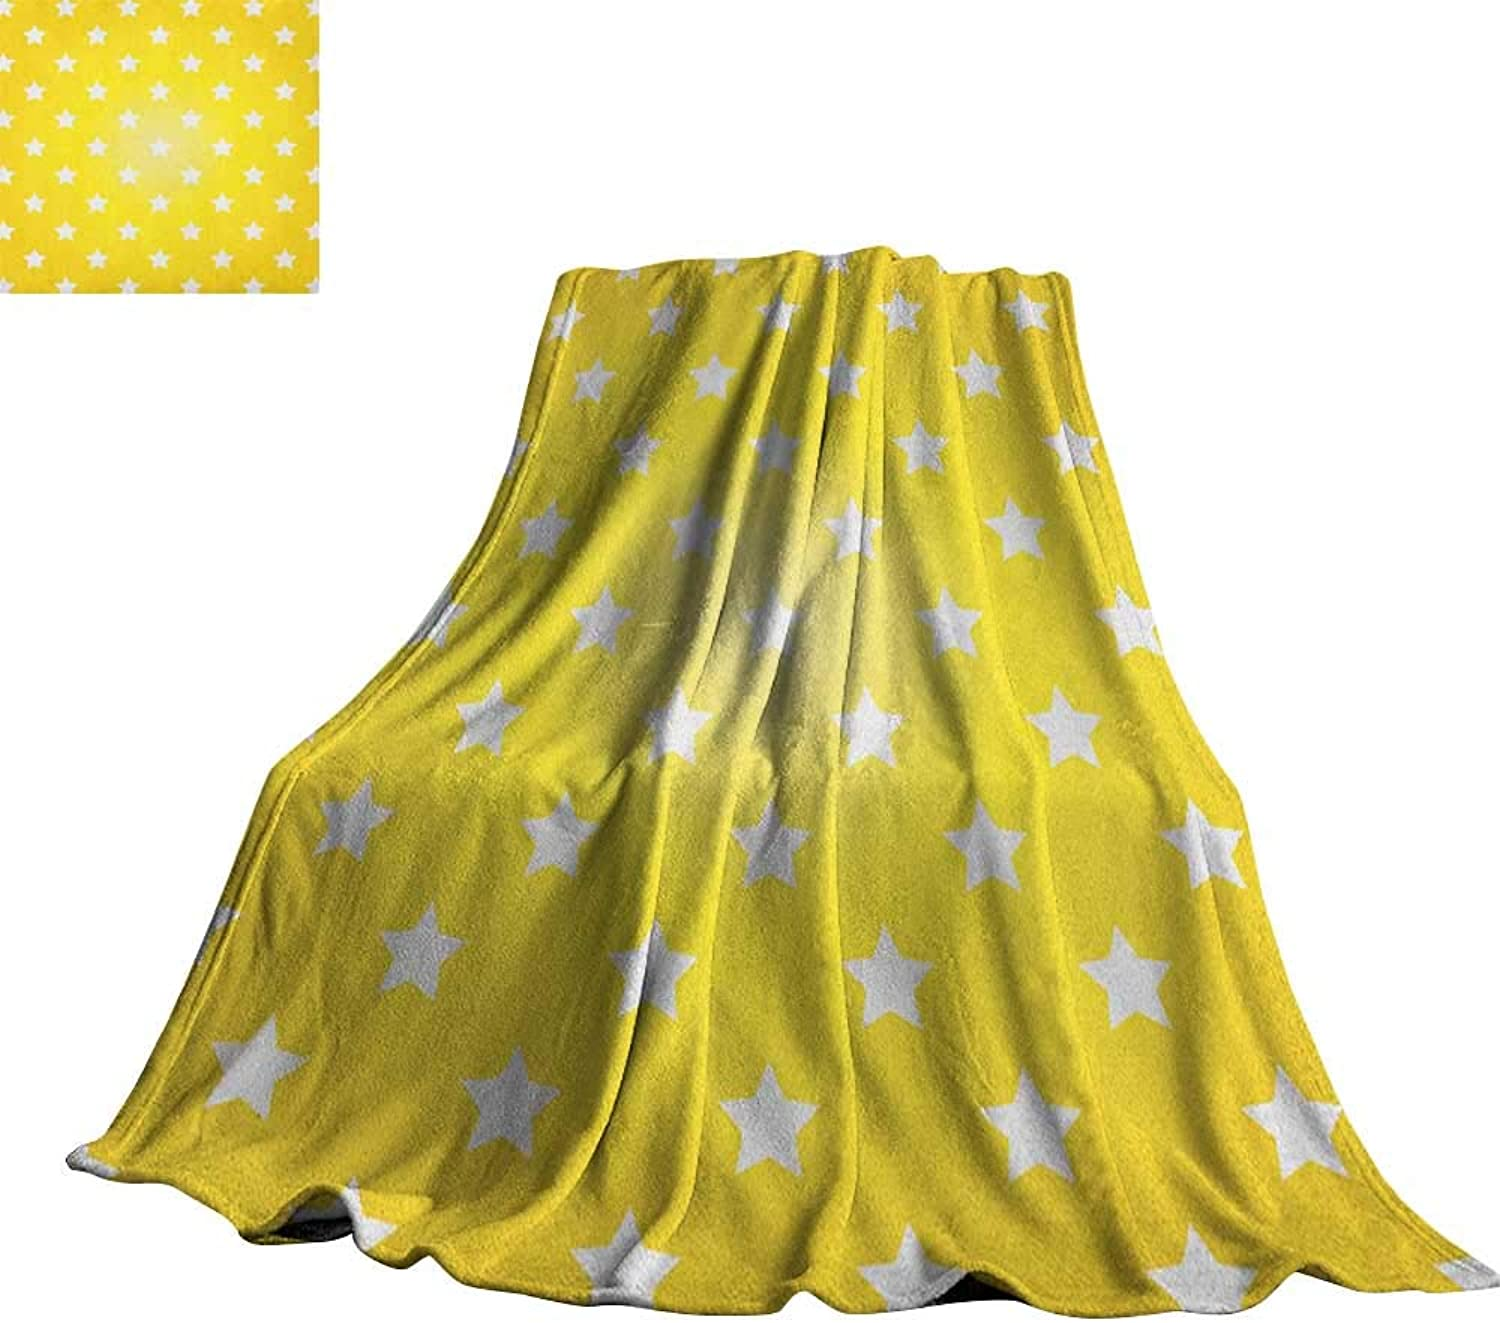 Yellow,Baby Blanket Bursting Vibrant Hanging Stars Fun Retro Kids with Graphic Design Artistic Print Super Soft Cozy Throws 70 x50